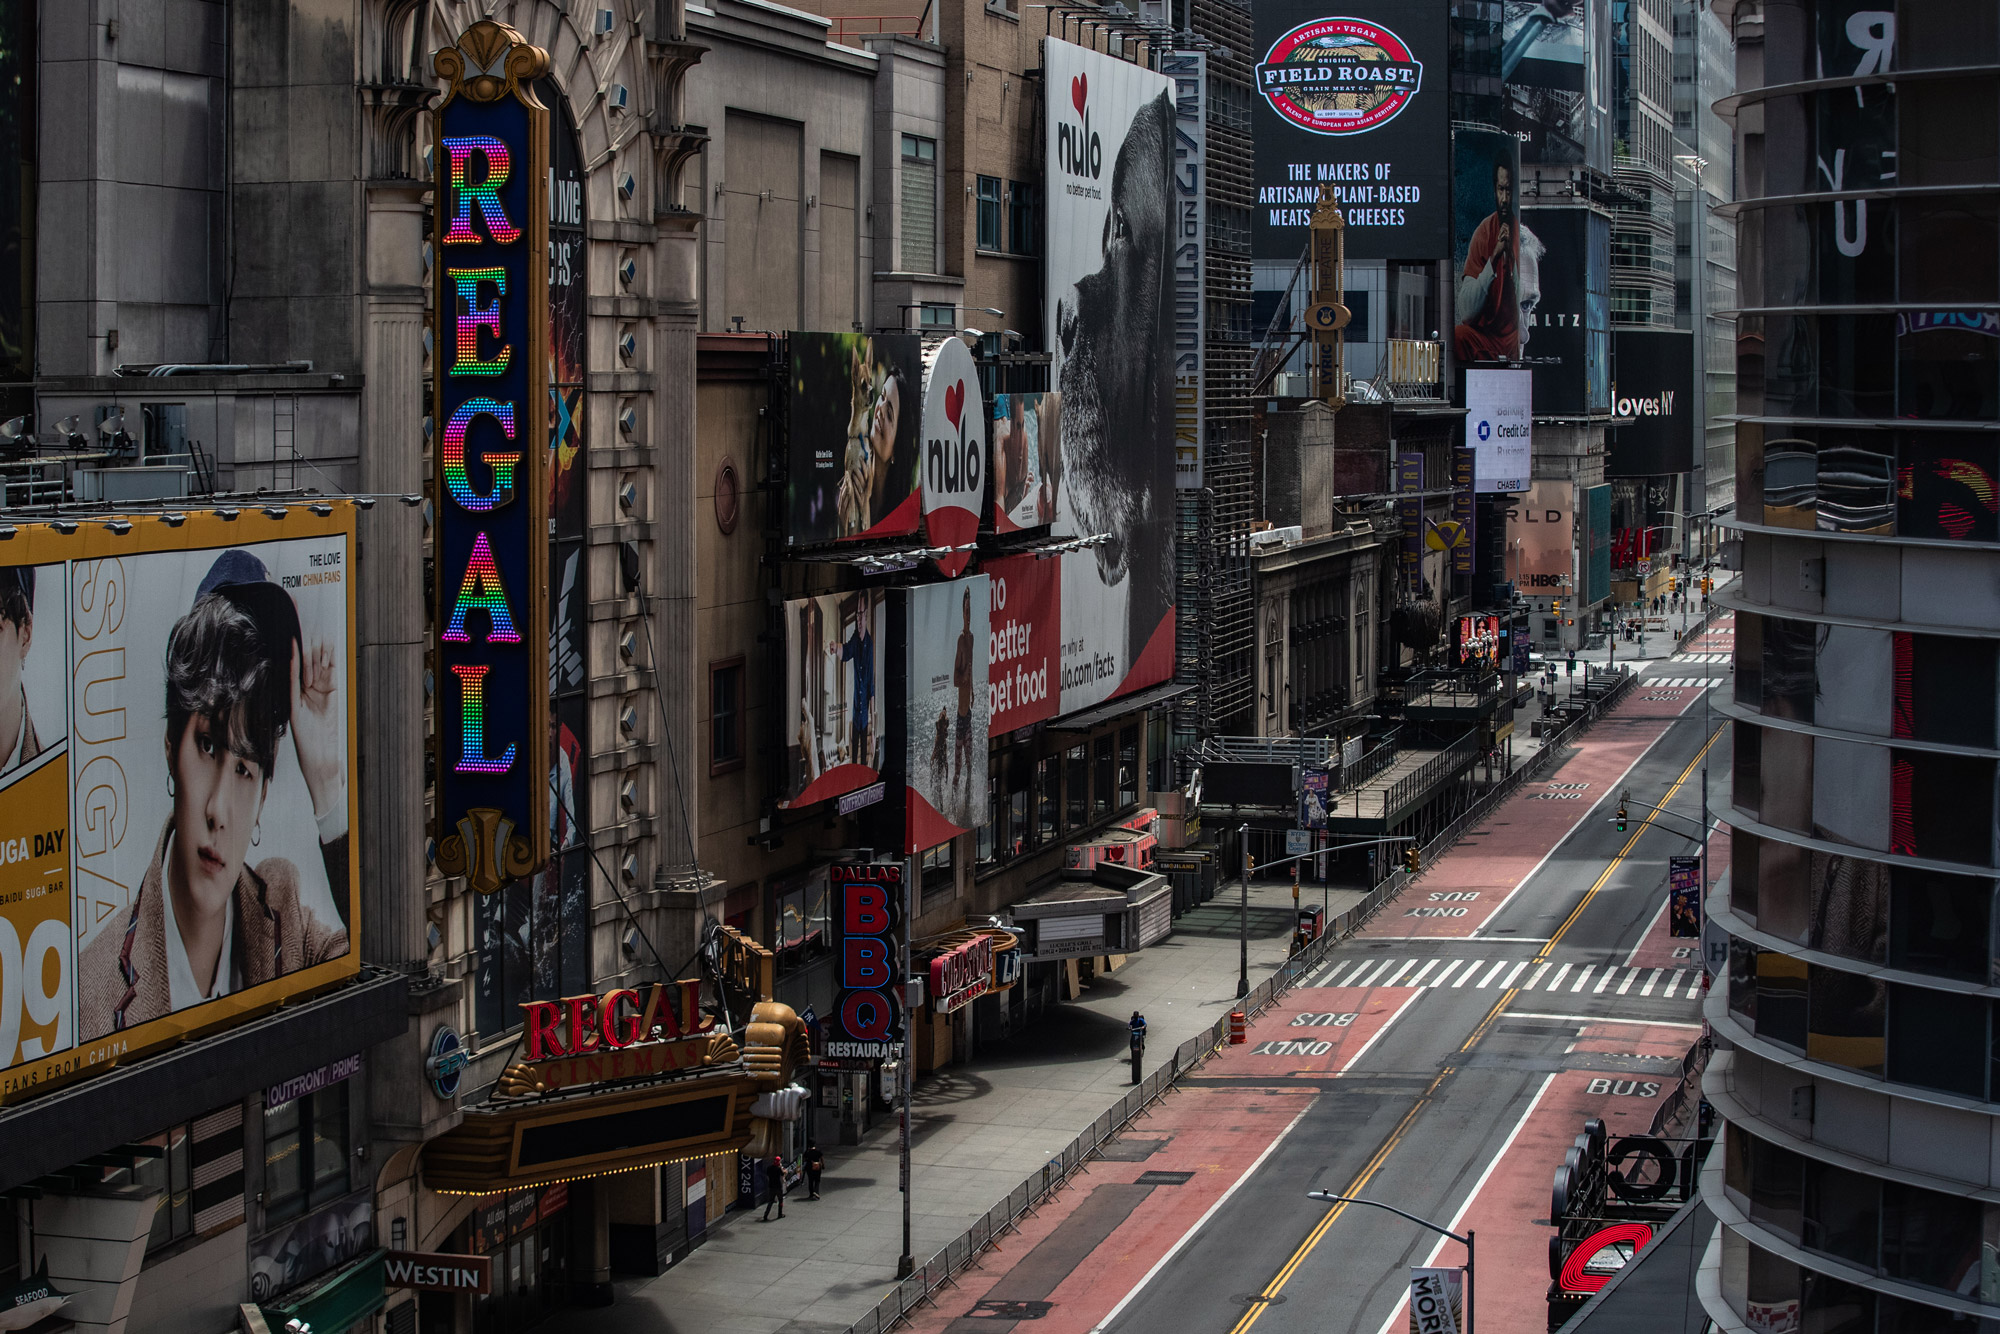 A nearly empty street is seen in Times Square in New York on June 11.